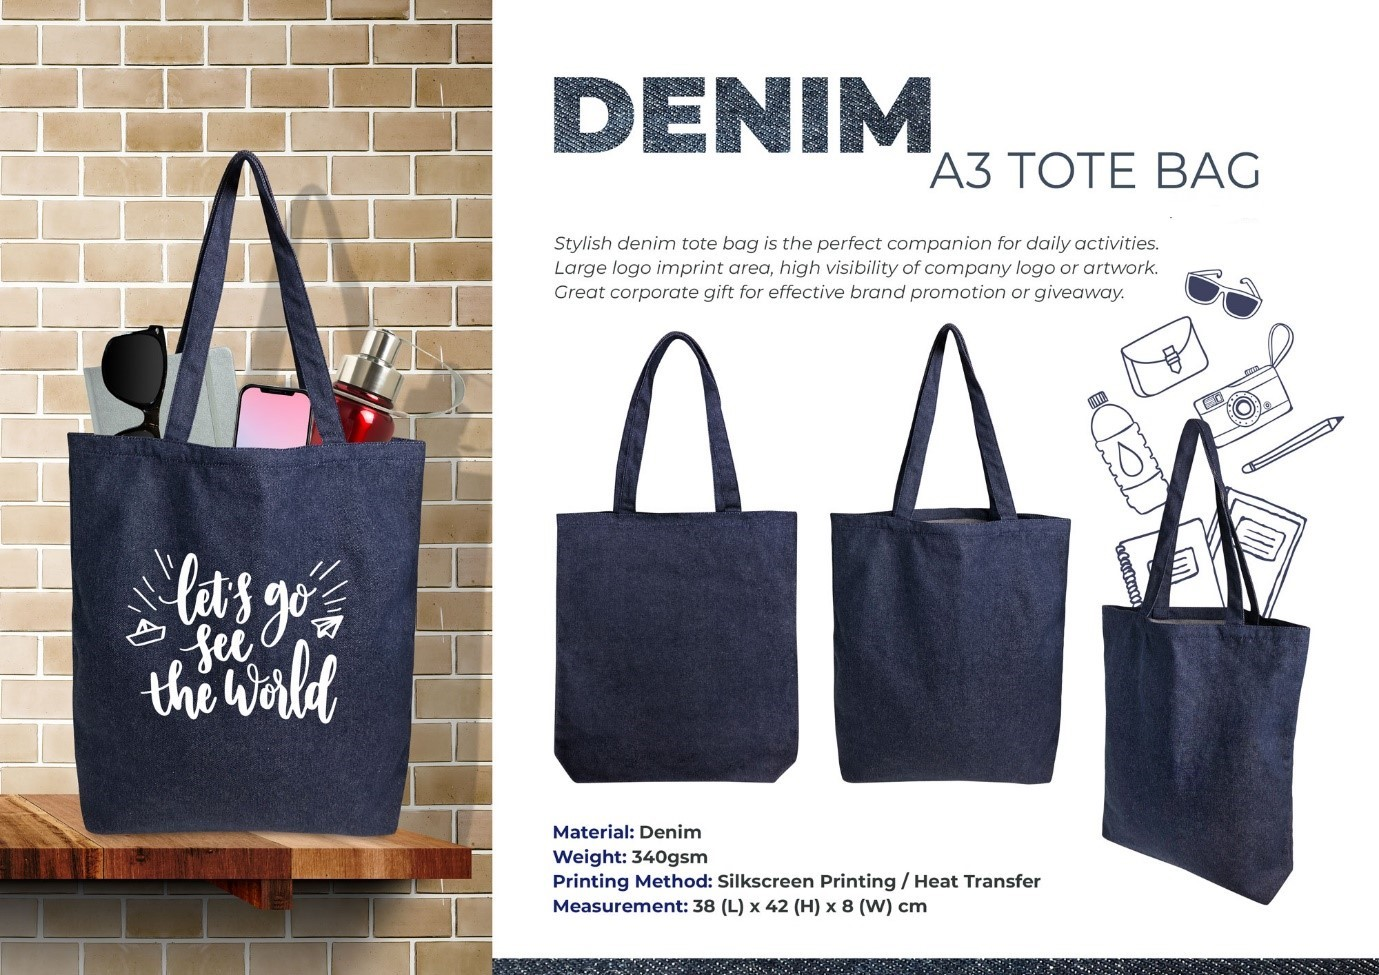 A3 Denim Tote Bag The Gift Embly